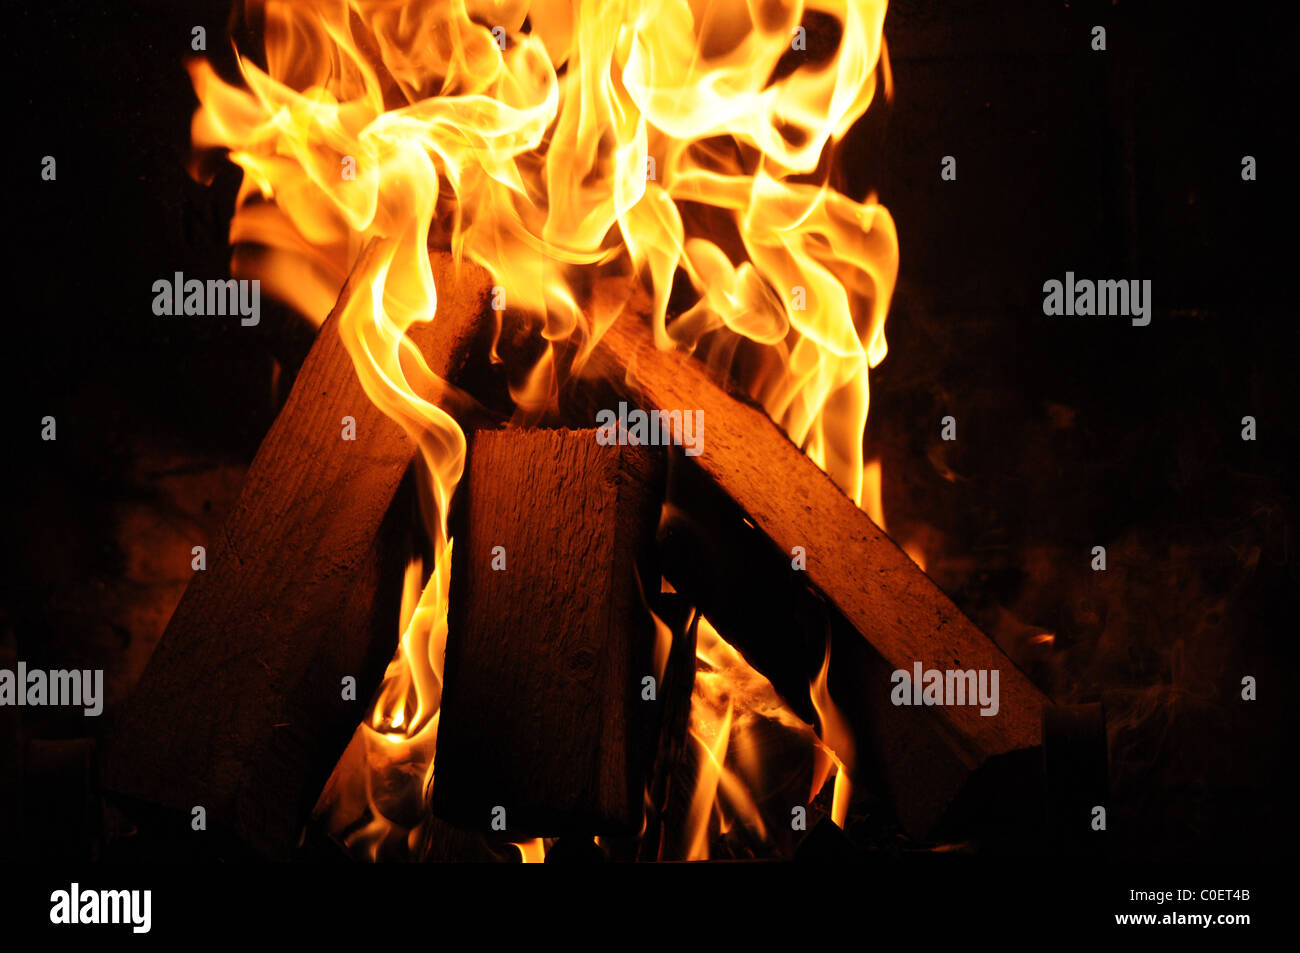 Log Fire seen burning in farm house,creating a feeling of warmth and comfort in cold winter months. Stock Photo